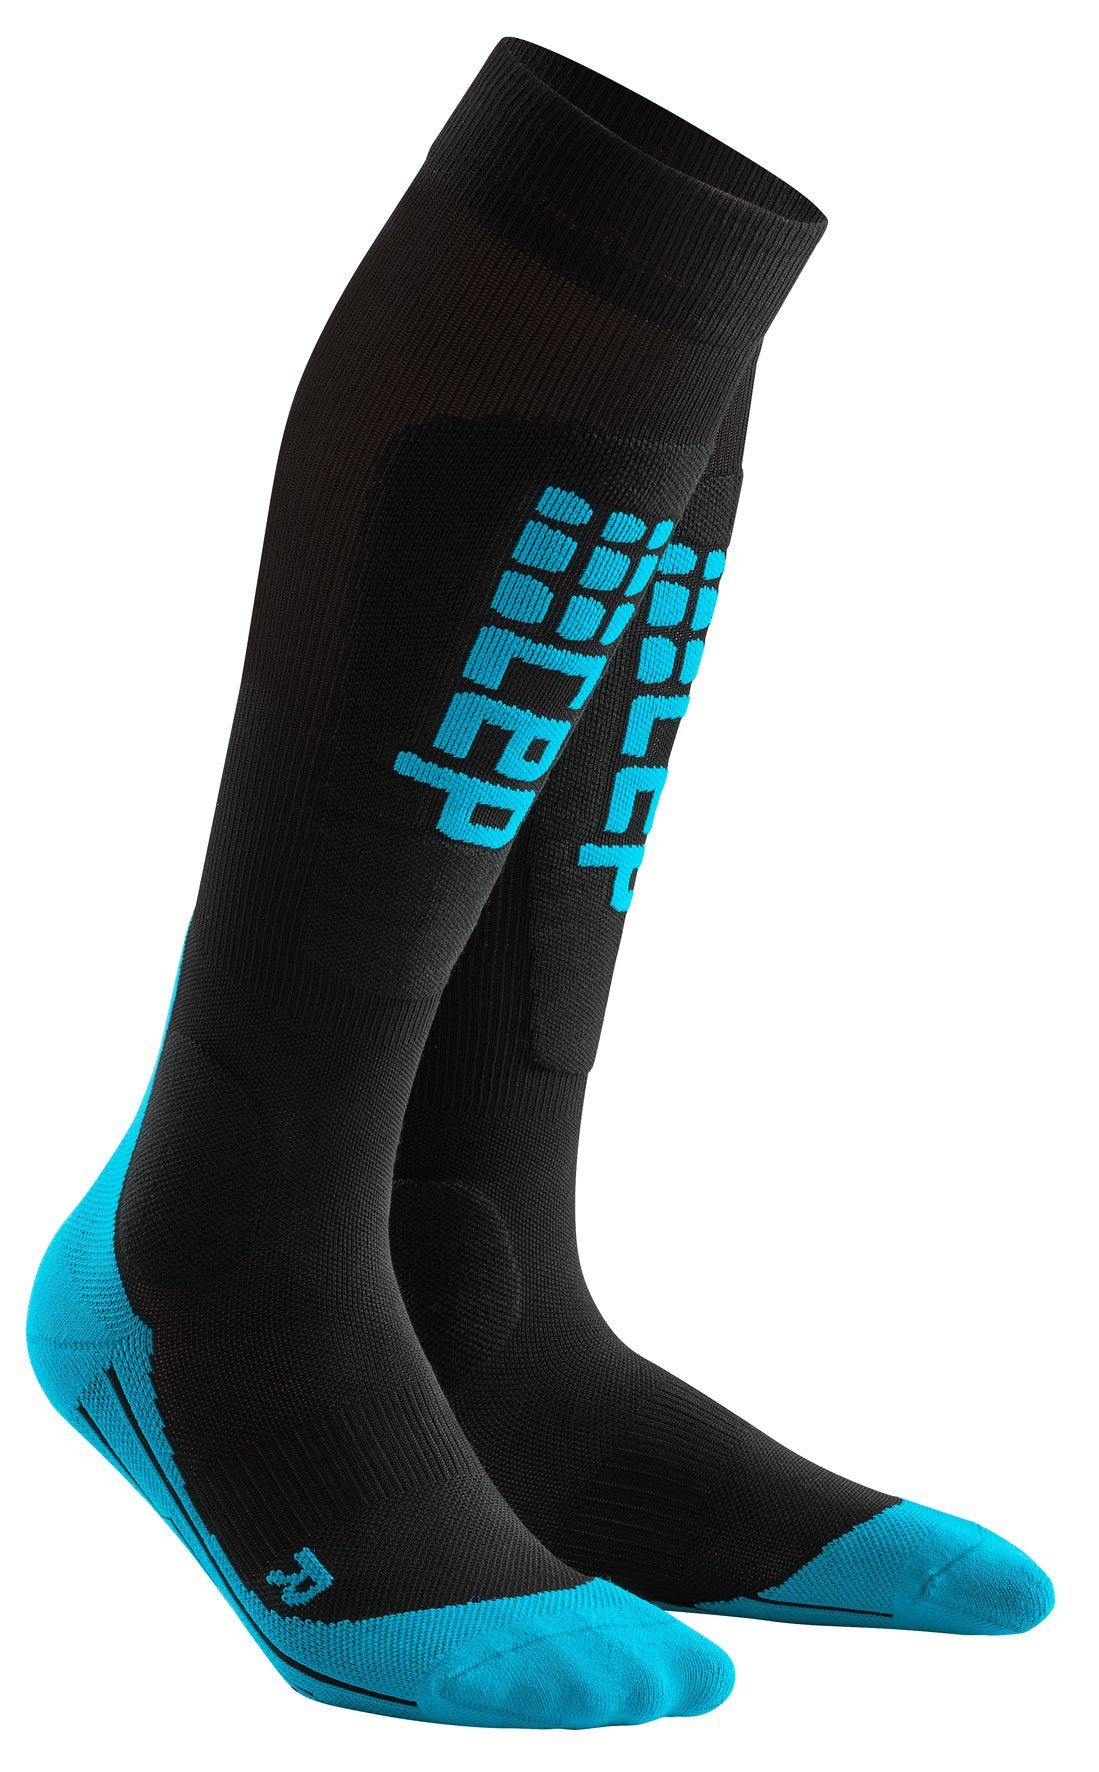 Ski Ultralight Socks, Men